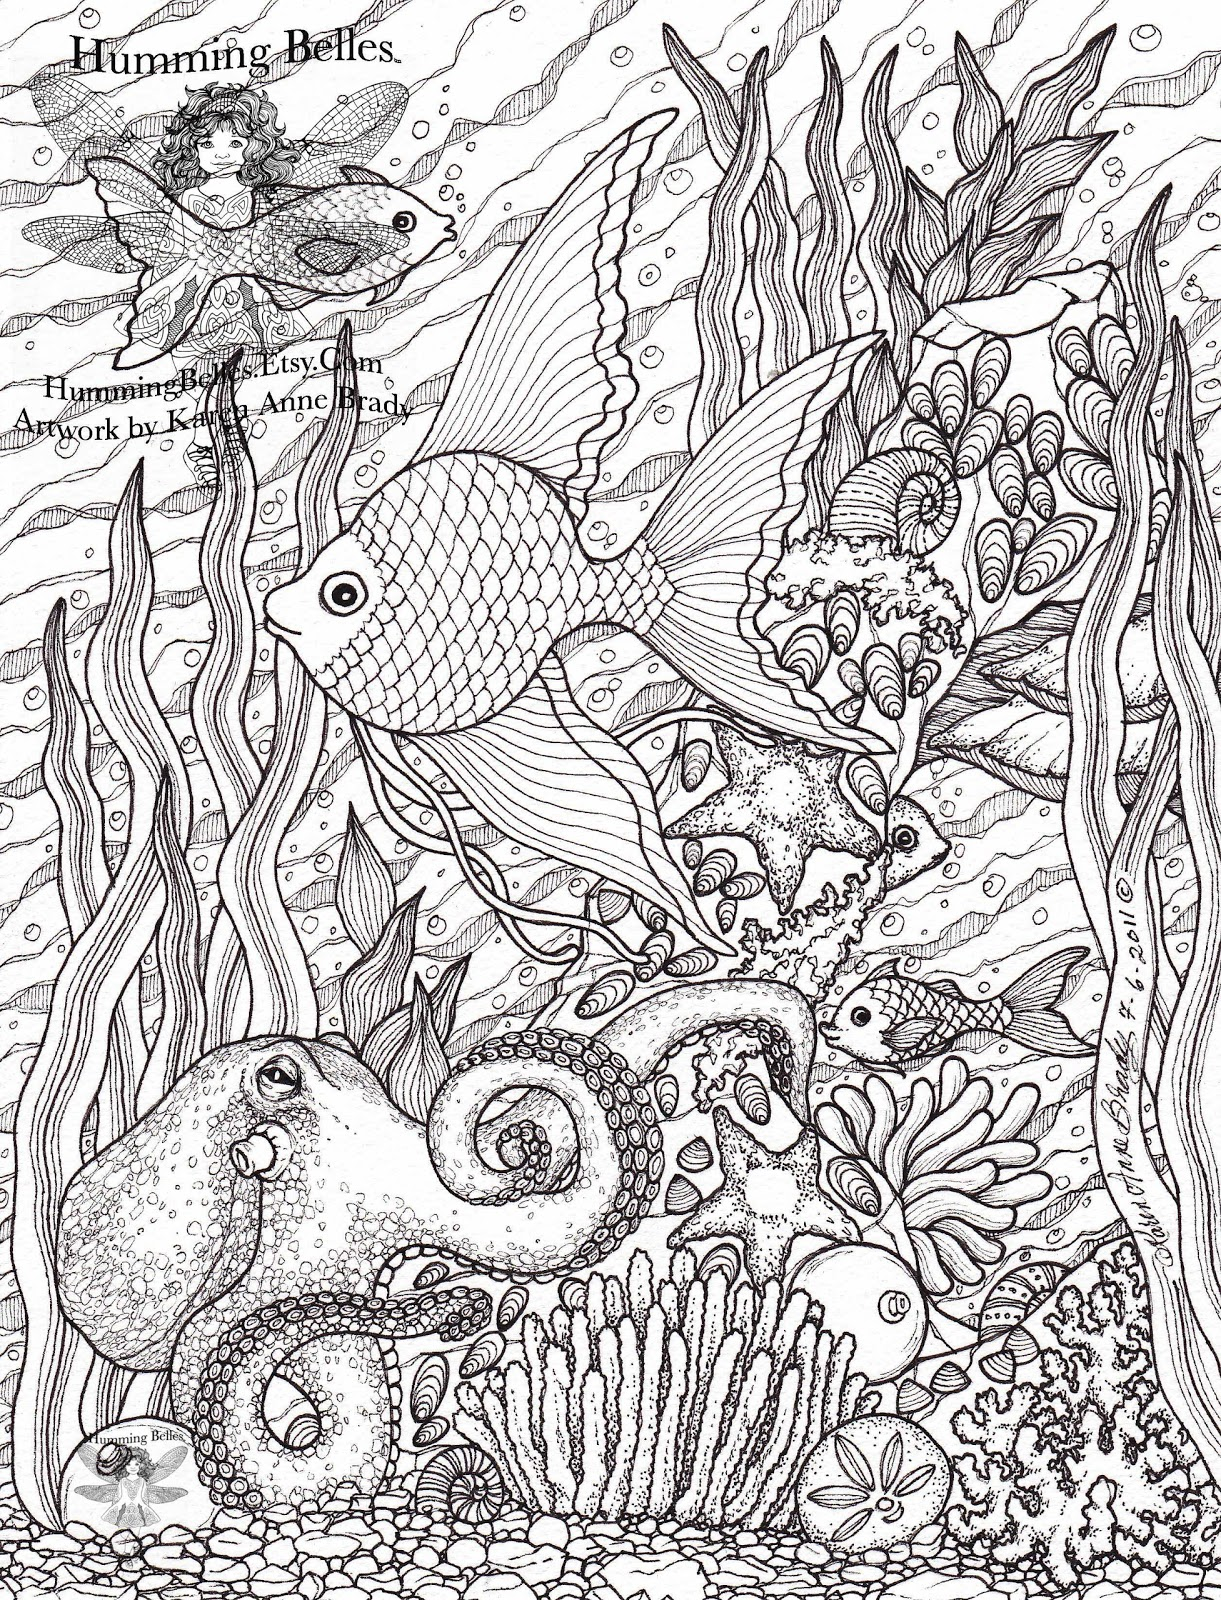 irelandbrady musings to ponder new undersea illustrations and coloring pages